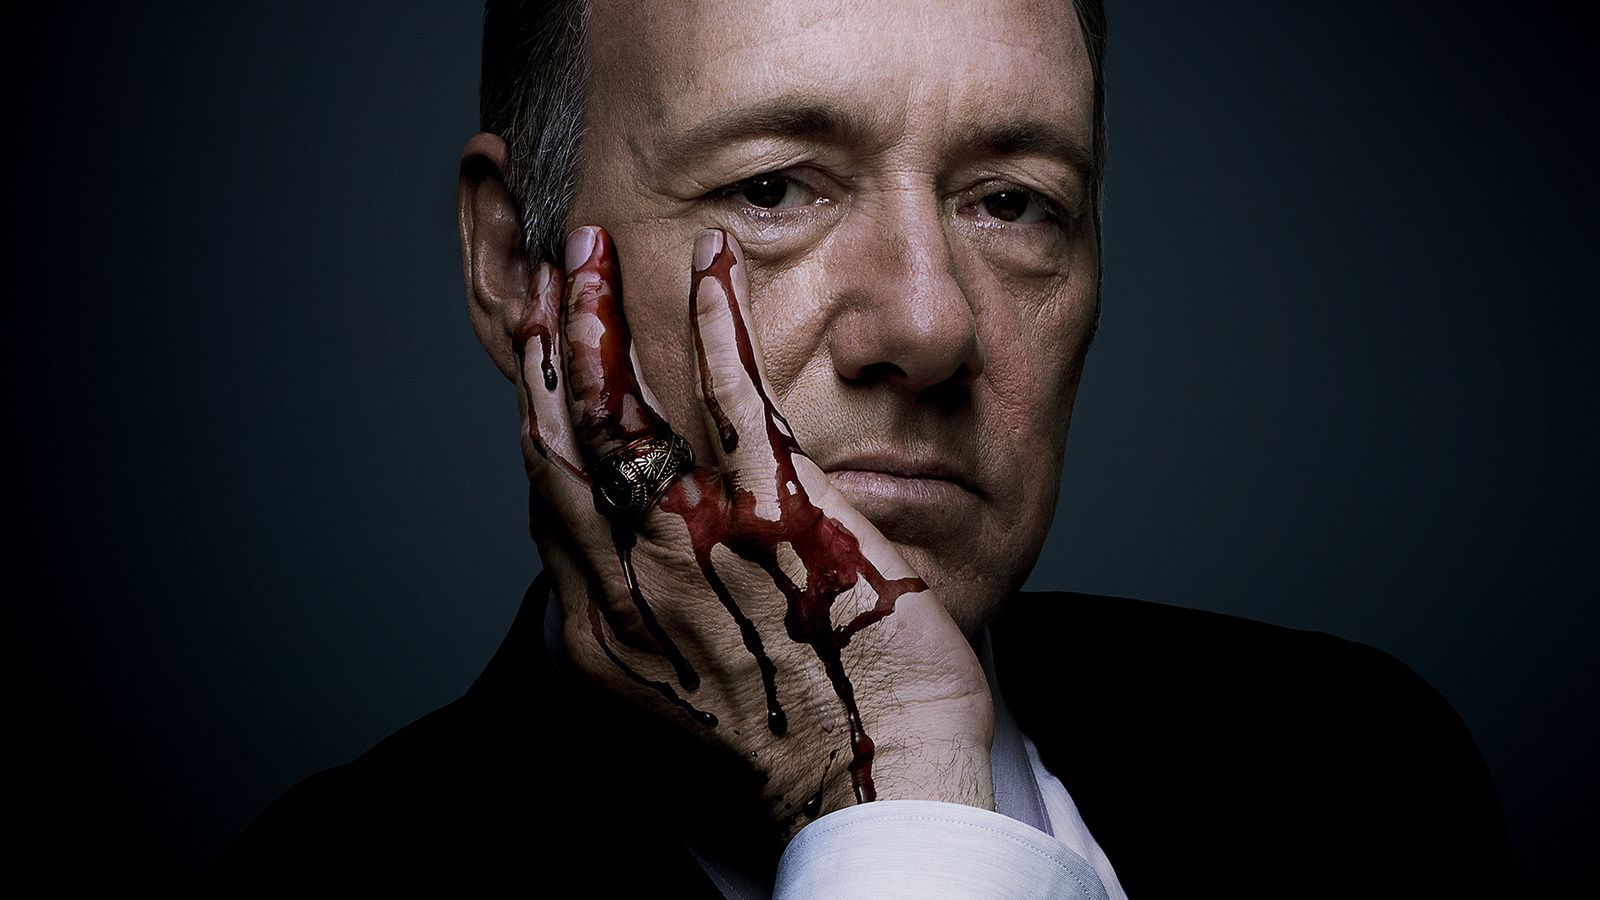 Le tournage de House of Cards censuré par la Russie ?